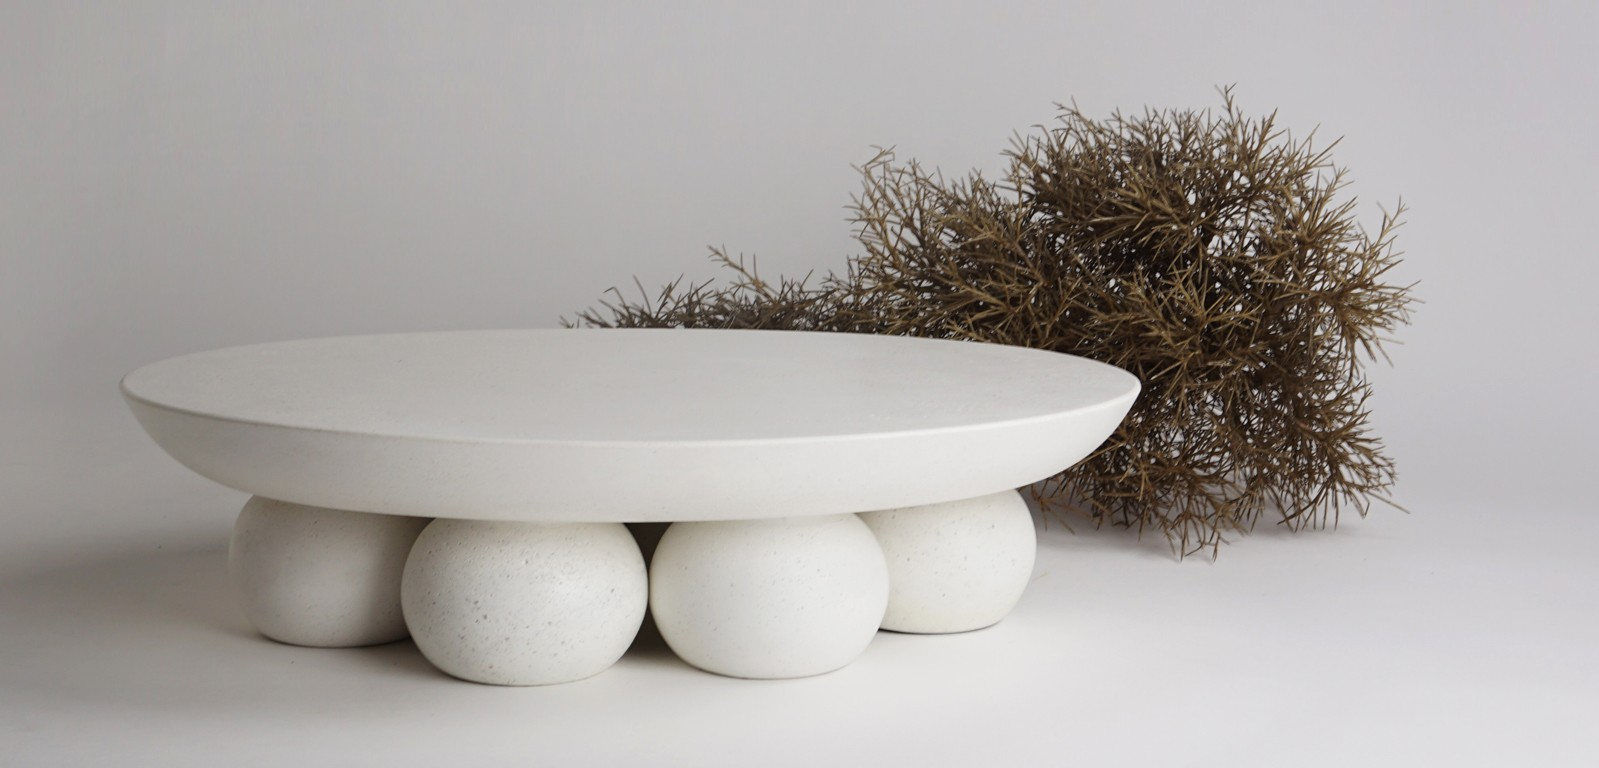 PIEDI-sculptural-centerpiece-stand-platter-tabletop-white-handmade-luxury-alentes-8